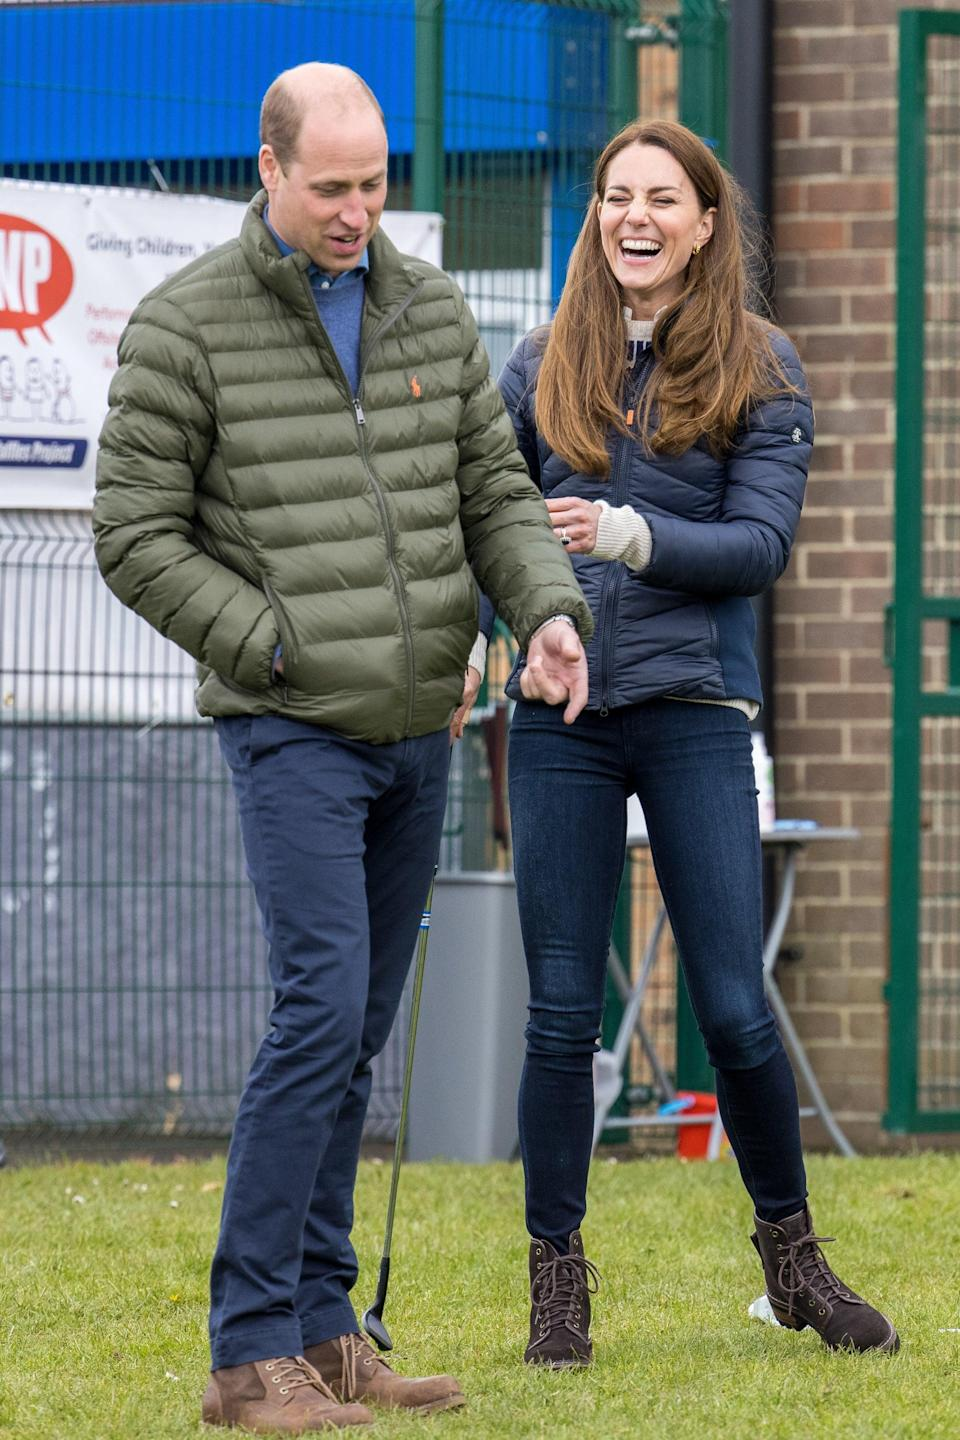 William and Kate visit Durham on 27 April 2021Getty Images